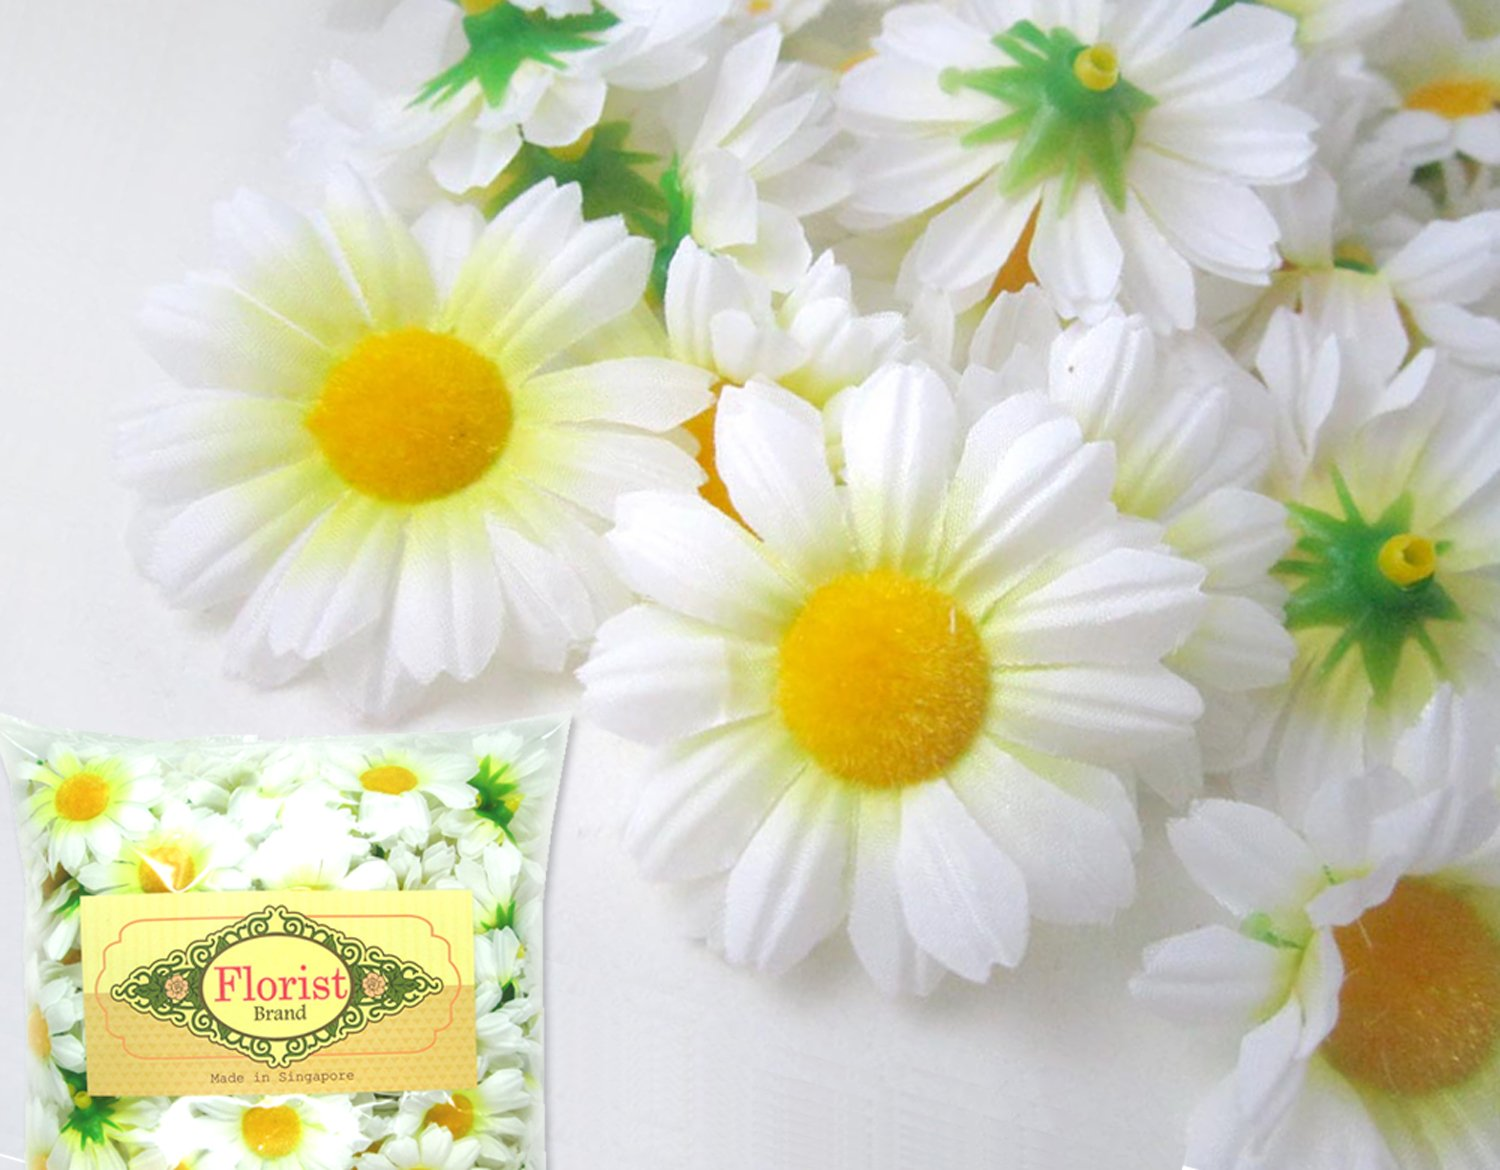 Amazon 24 silk white gerbera daisy flower heads gerber amazon 24 silk white gerbera daisy flower heads gerber daisies 175 artificial flowers heads fabric floral supplies wholesale lot for wedding izmirmasajfo